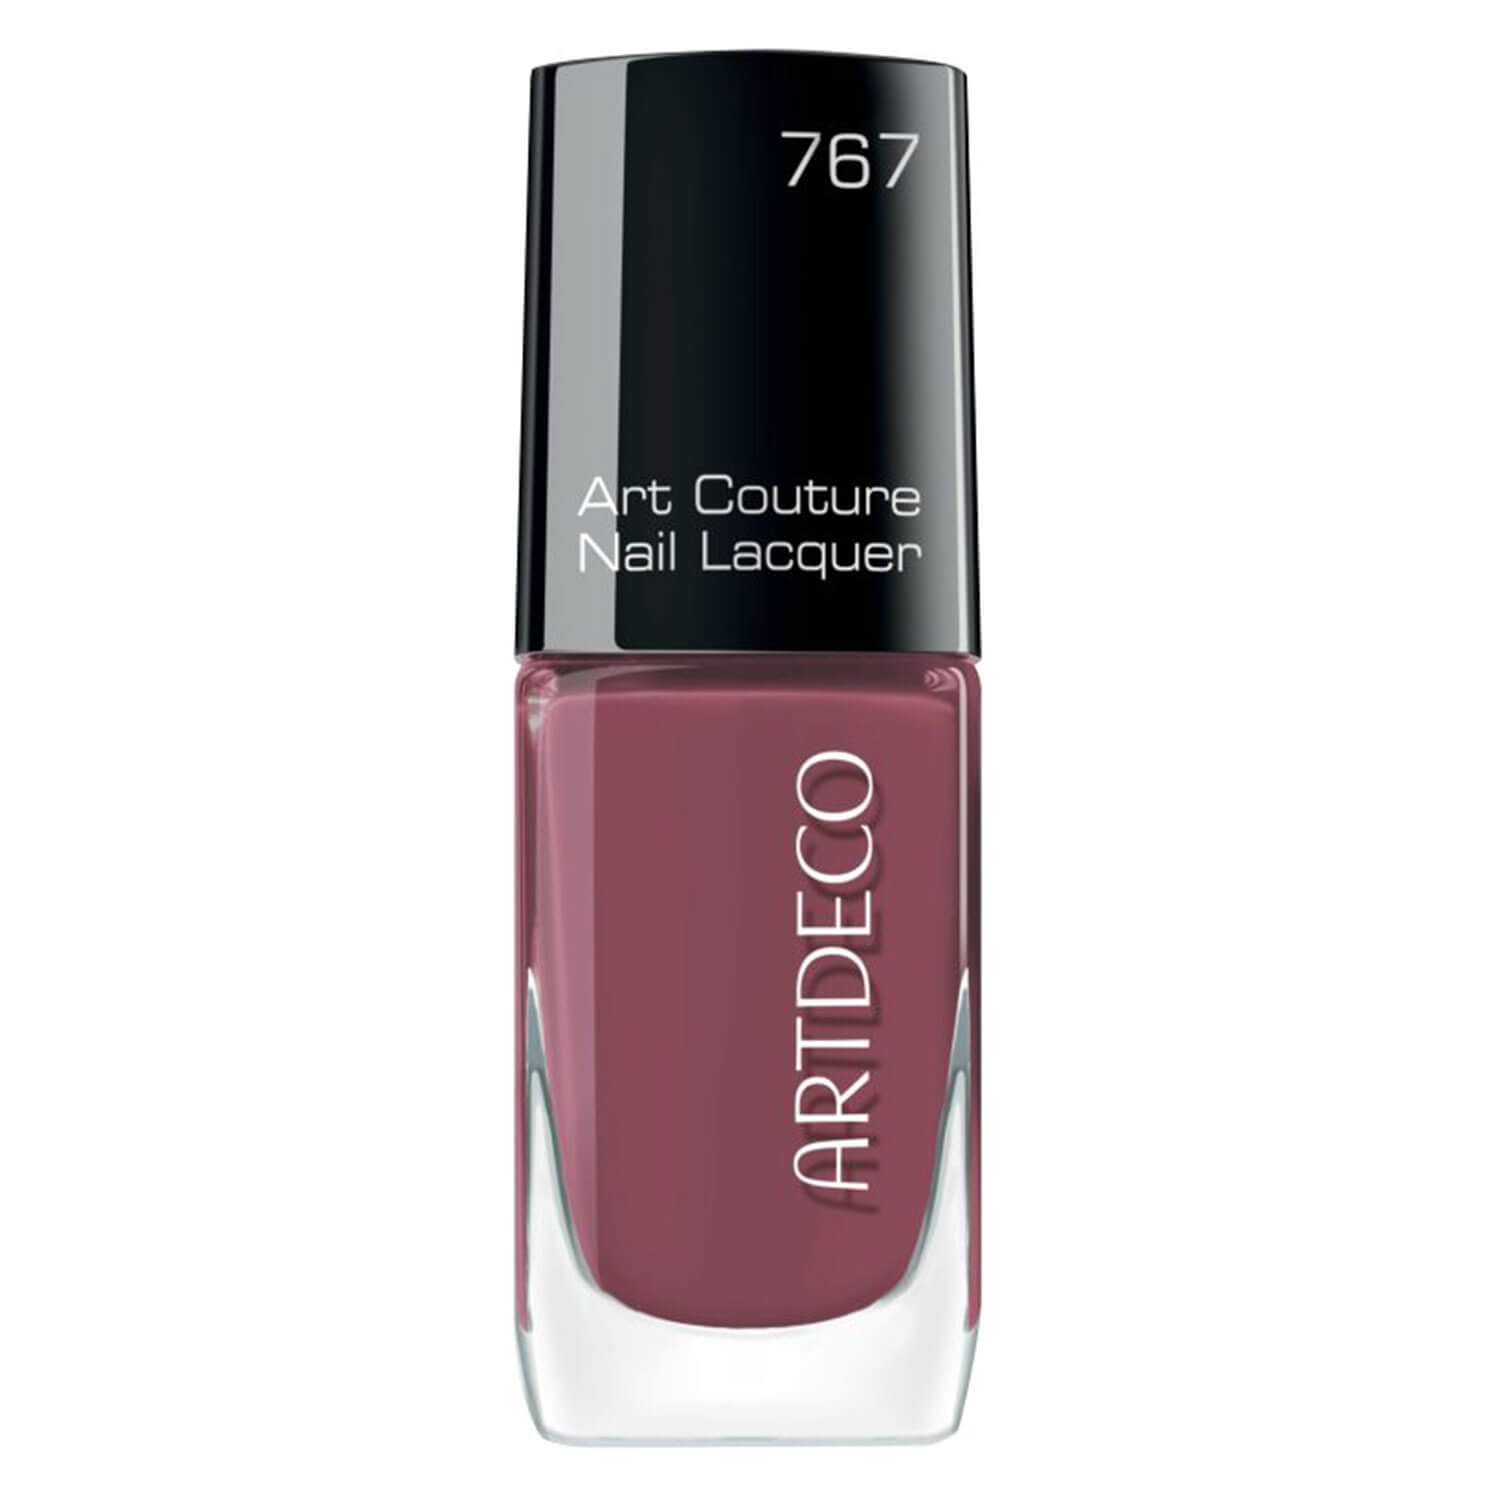 Art Couture - Nail Lacquer Berry Mauve 767